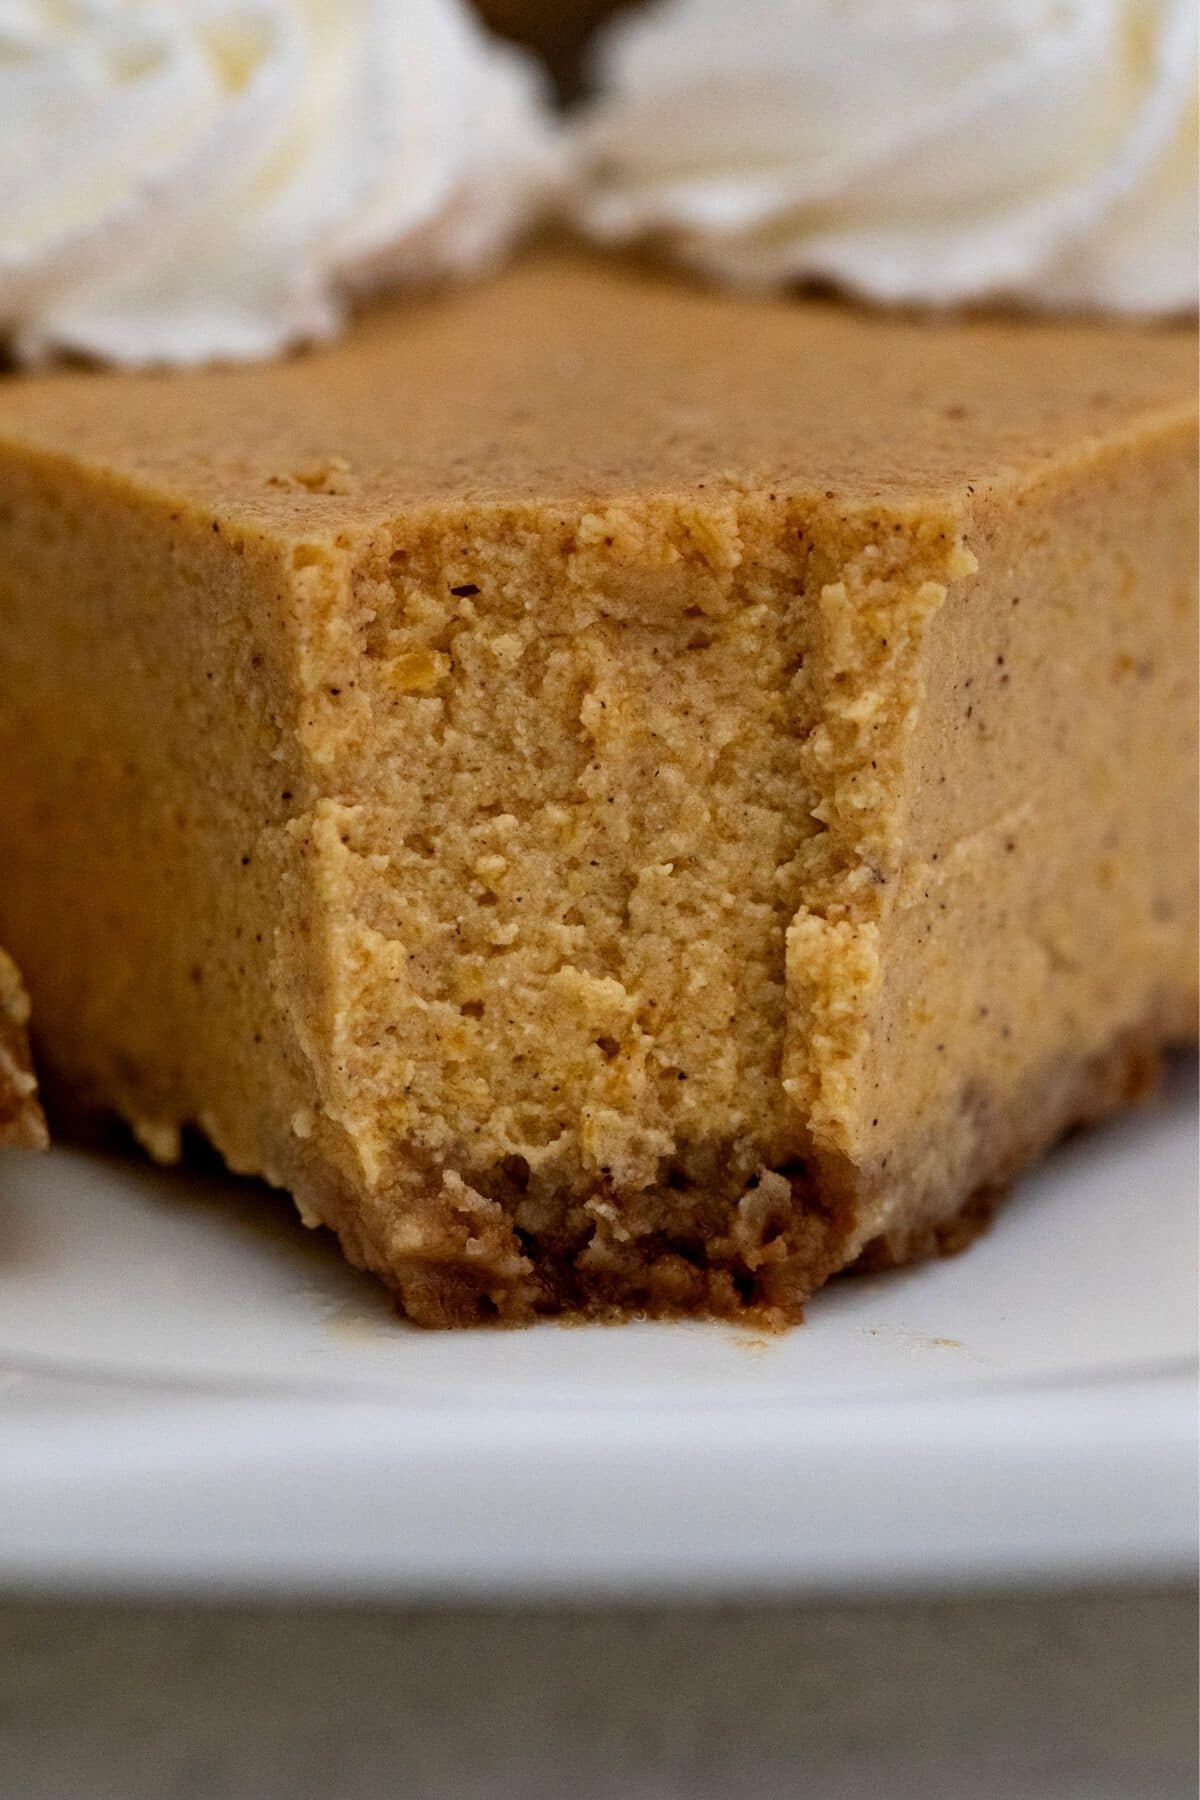 Front of pumpkin cheesecake with bite taken